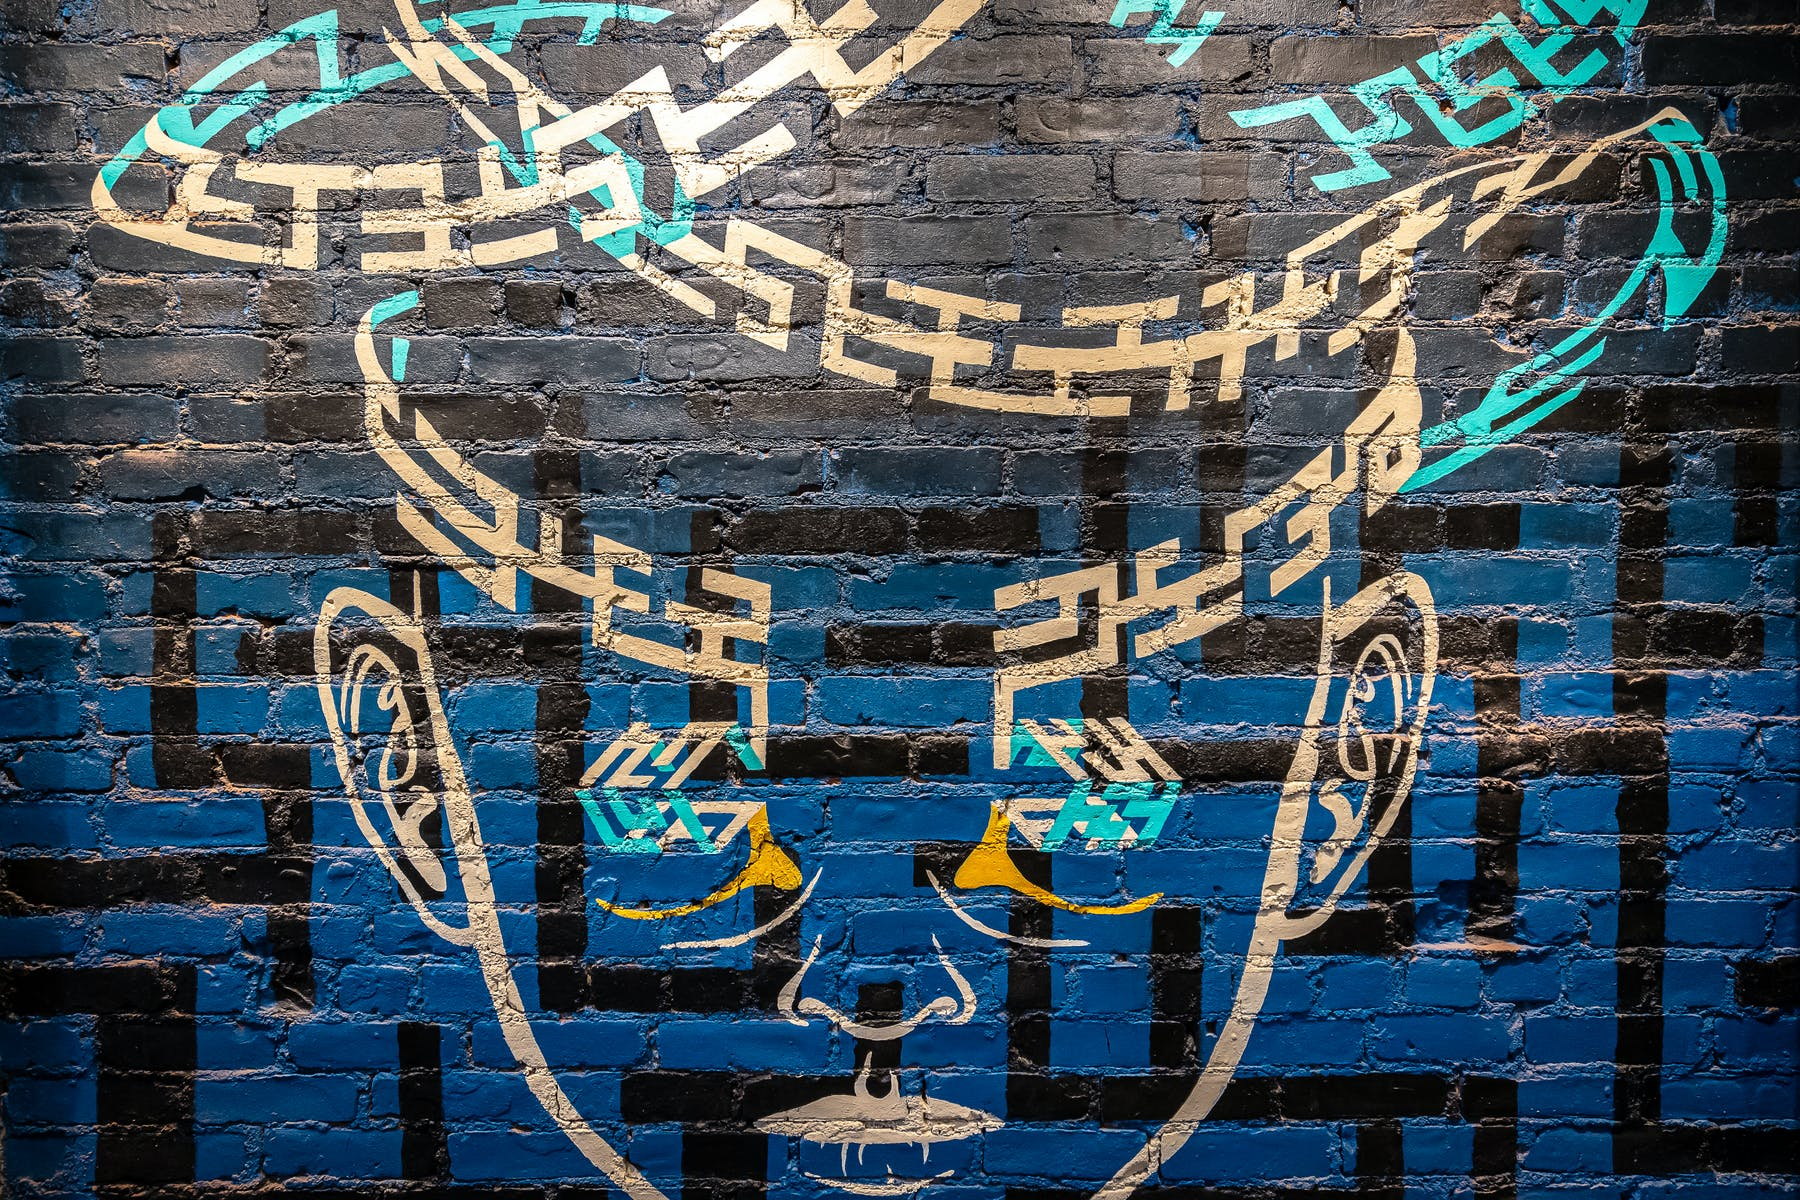 A brick wall painted blue and a gold face